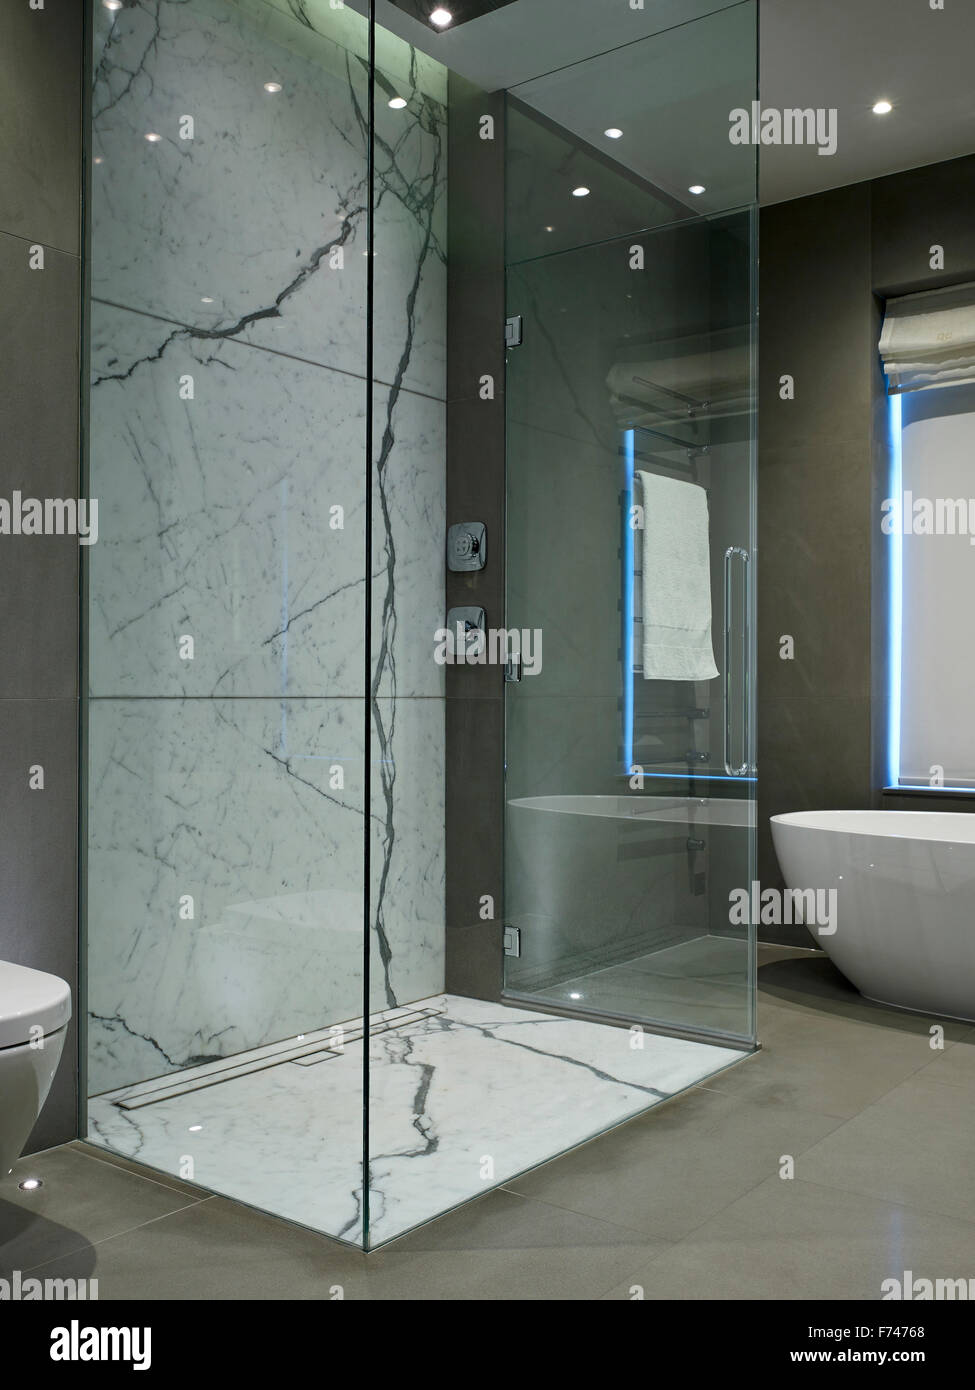 Shower cubicle in bathroom of Chelsea Apartment, London, England, UK - Stock Image